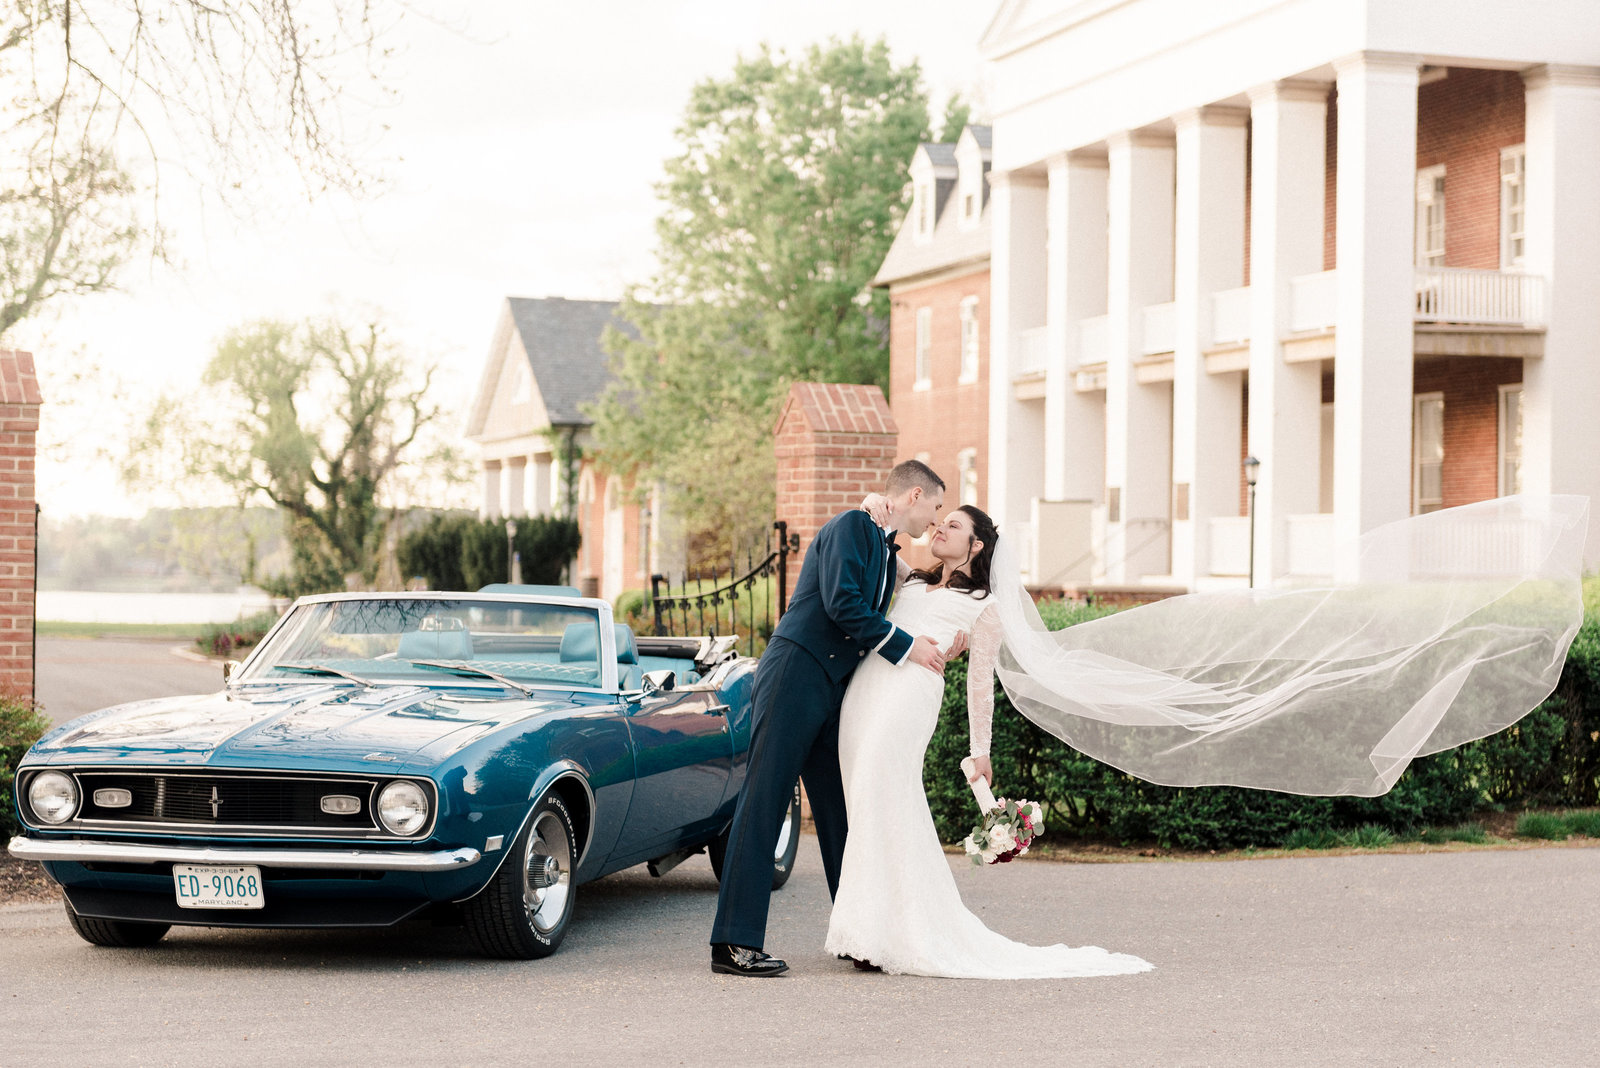 Maryland bride and groom in front of vintage car